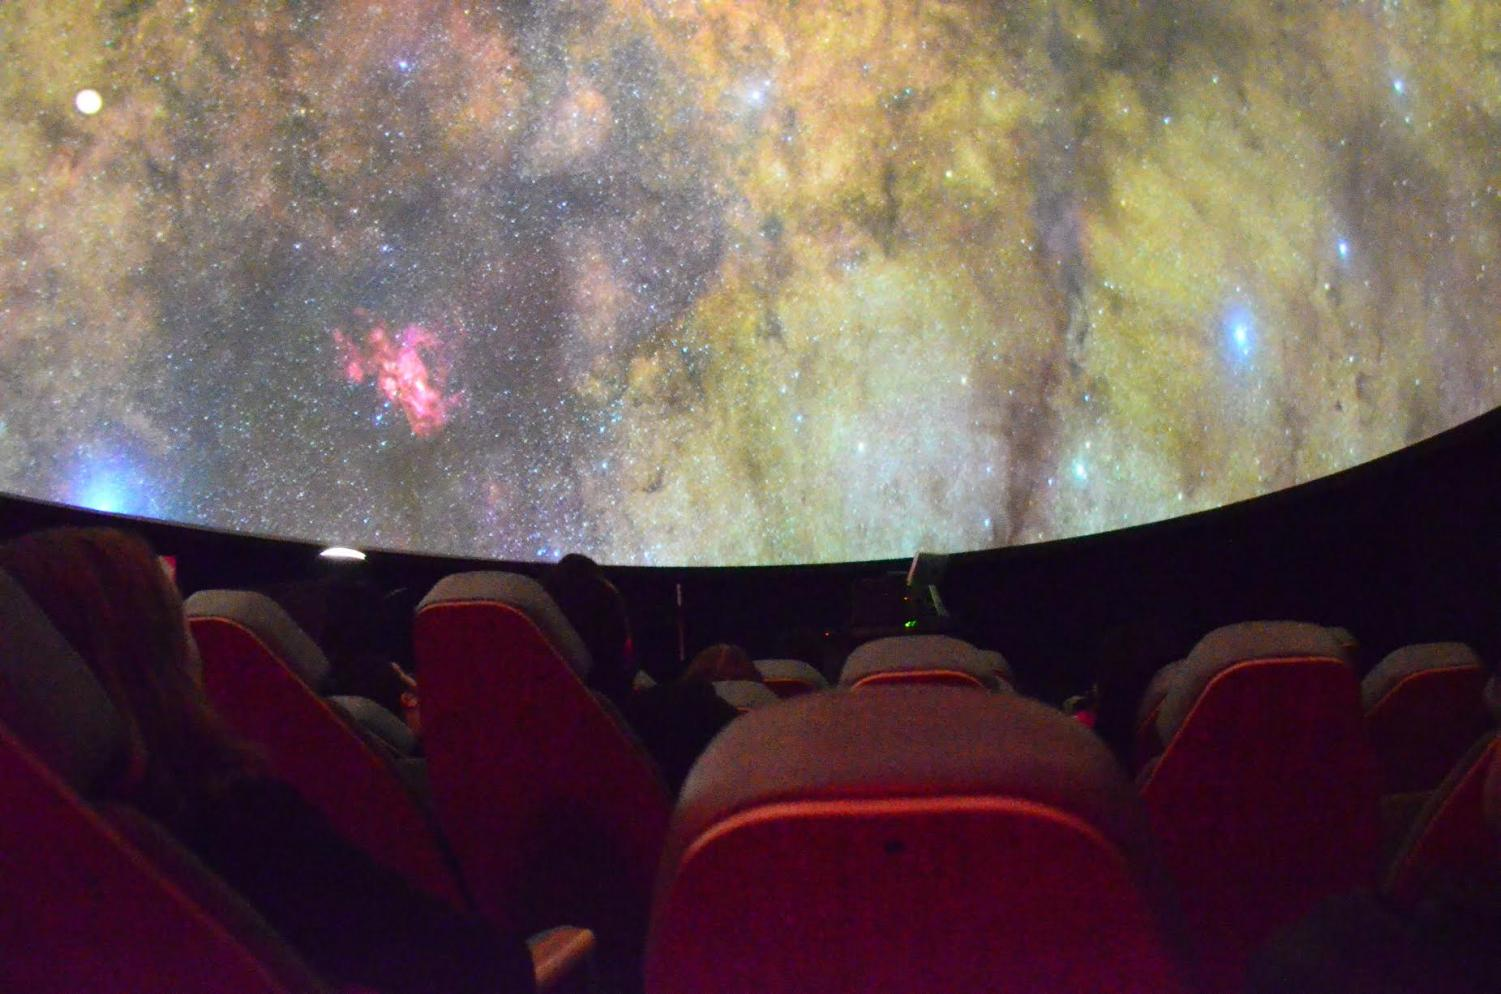 Haile Planetarium hosts free Friday night shows through the month of June.